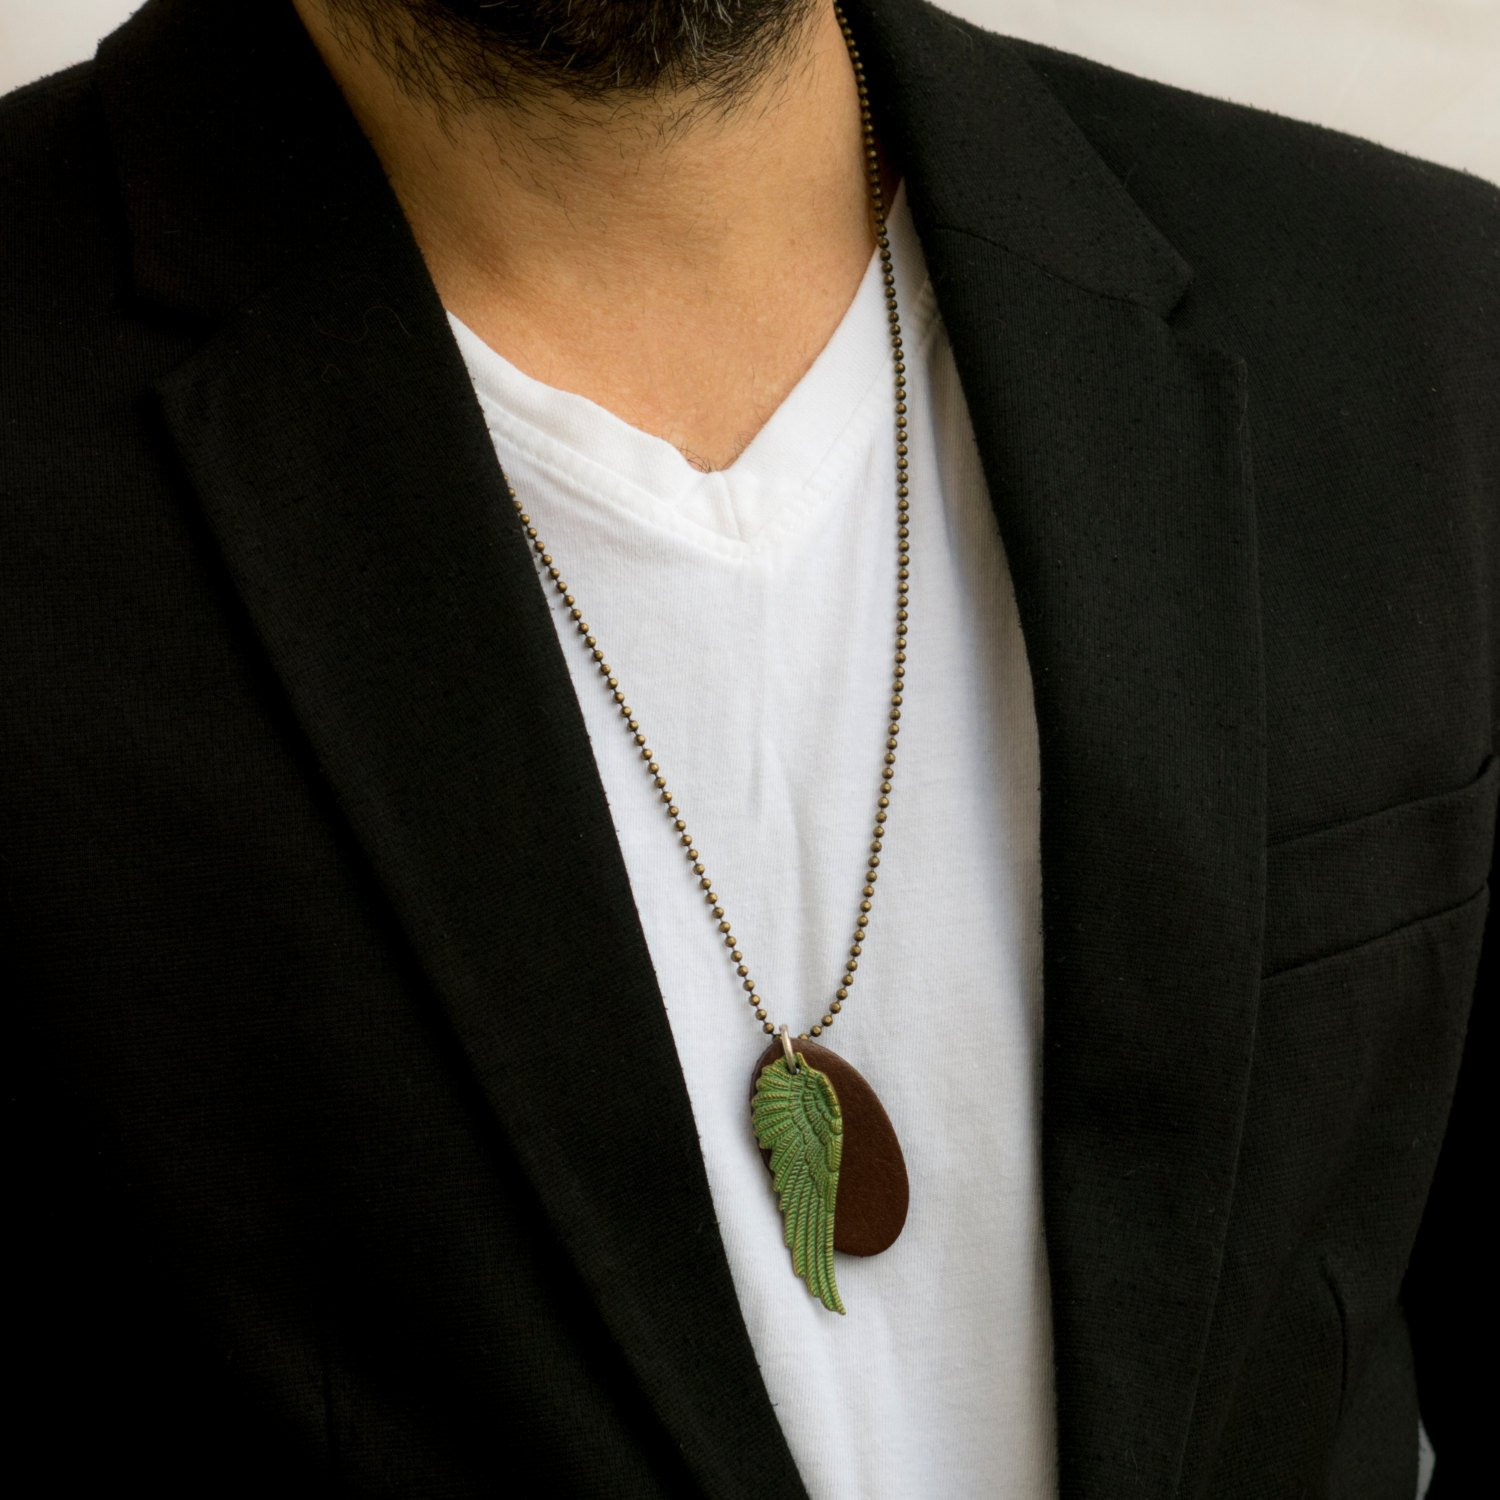 Men's Necklace - Men's Brass Necklace - Men's Leather Necklace - Men's Jewelry - Men's Gift